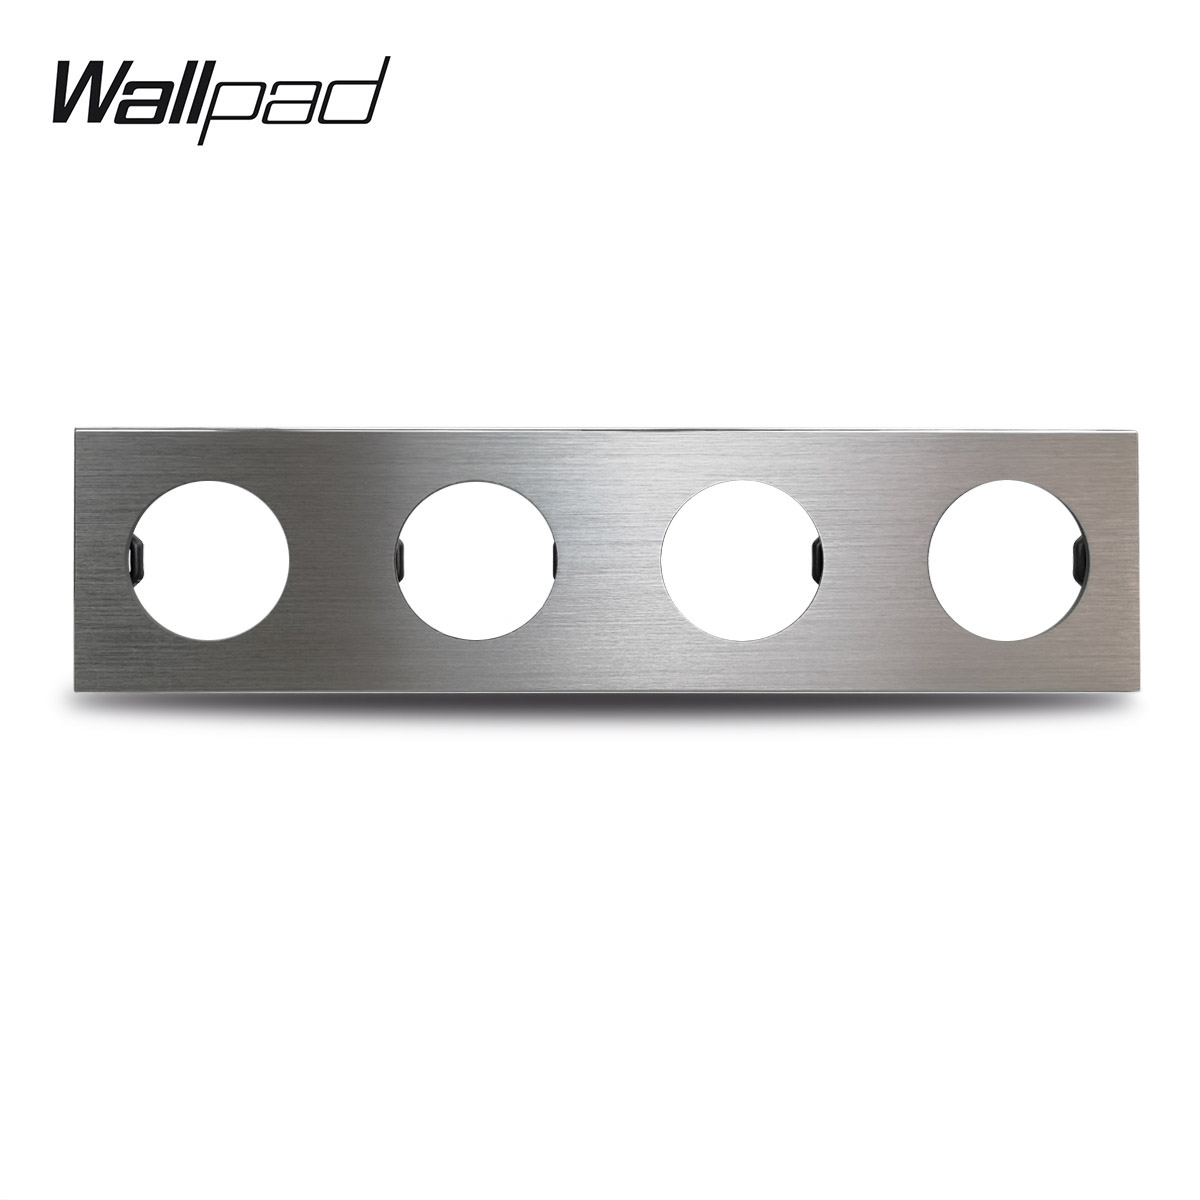 L6 DIY Quadruple 4 Frame Silver Panel Brushed Aluminum For Wall Switch Socket Metal Plate Free Combination, 344*86mm